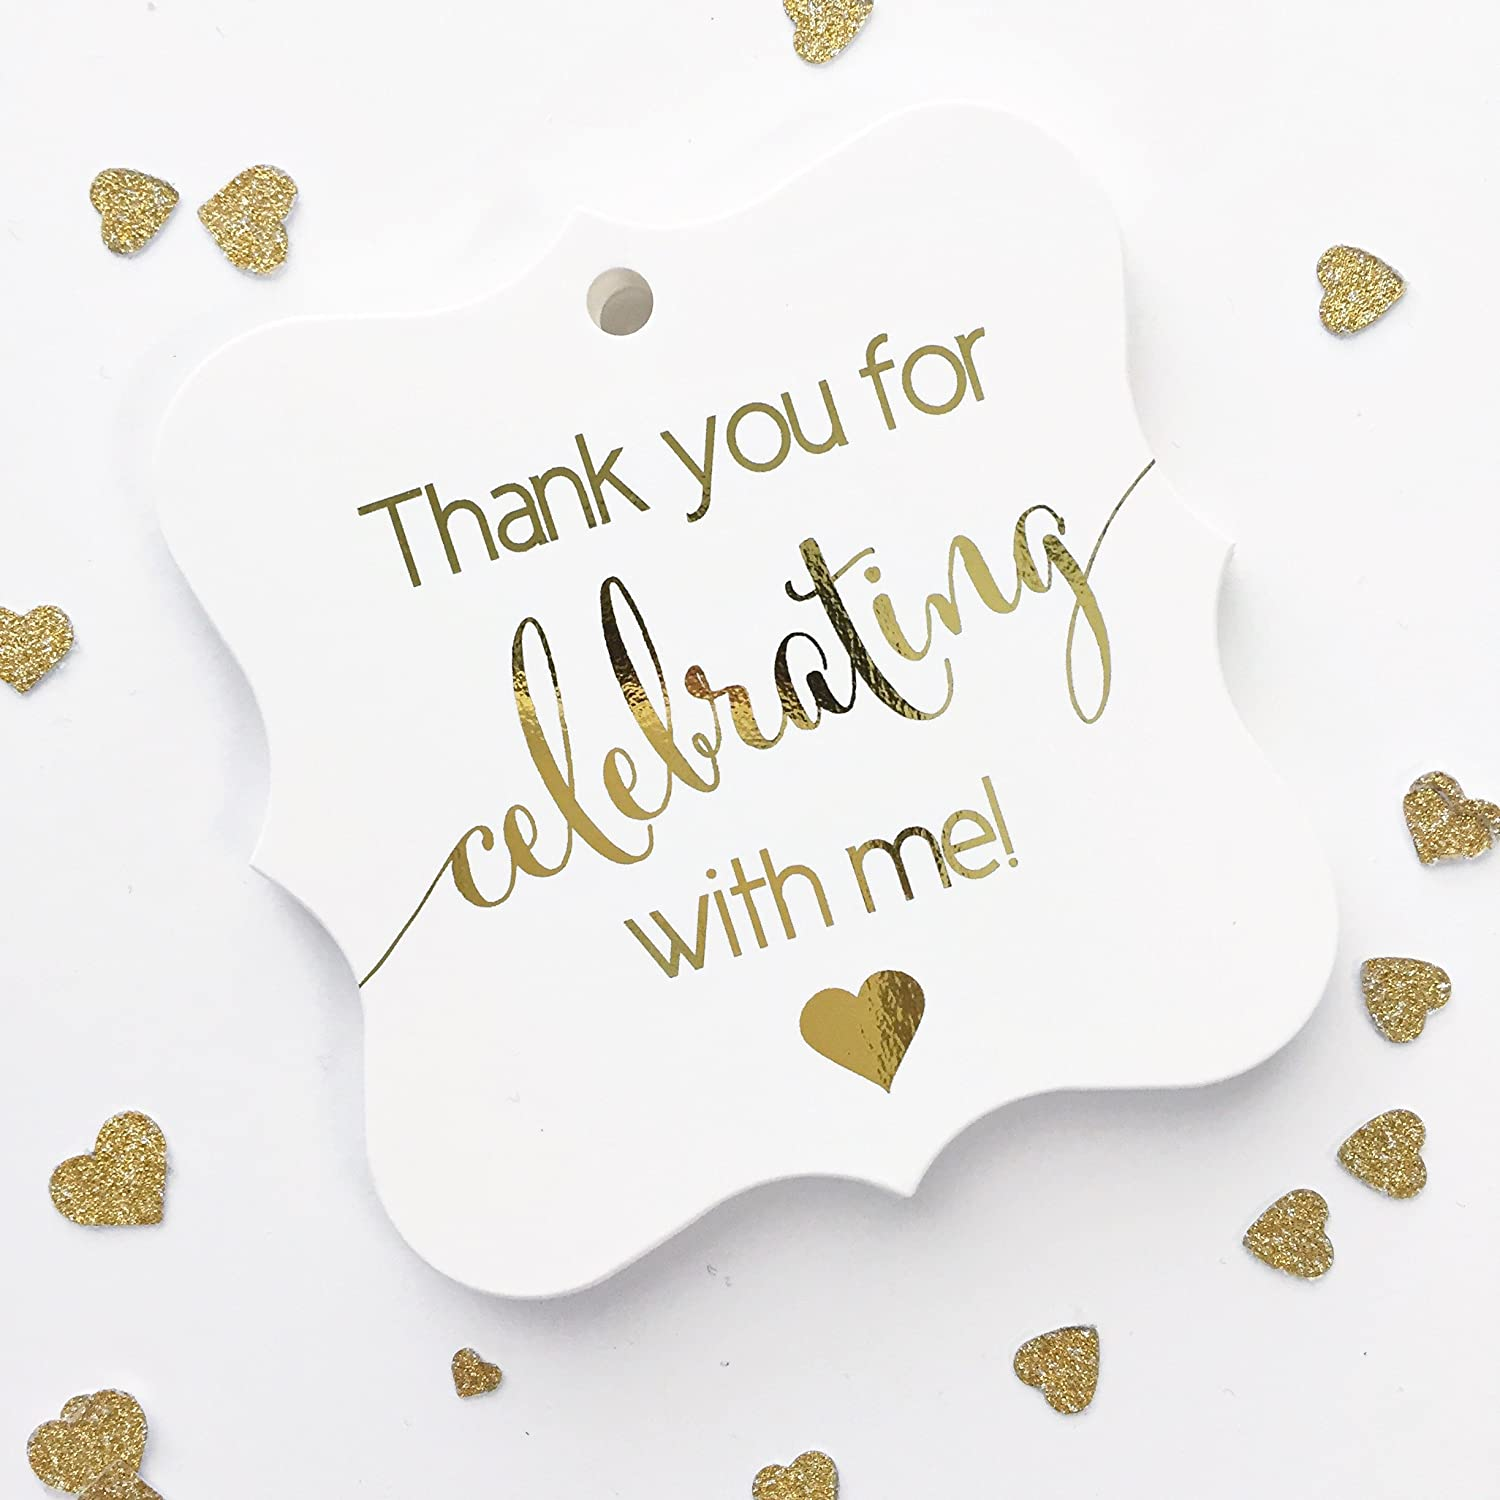 LLT-234-F Welcome Special Day Celebration Favor Tags Wedding//Celebration Shower Favor Tags Color Foil Customized Tags